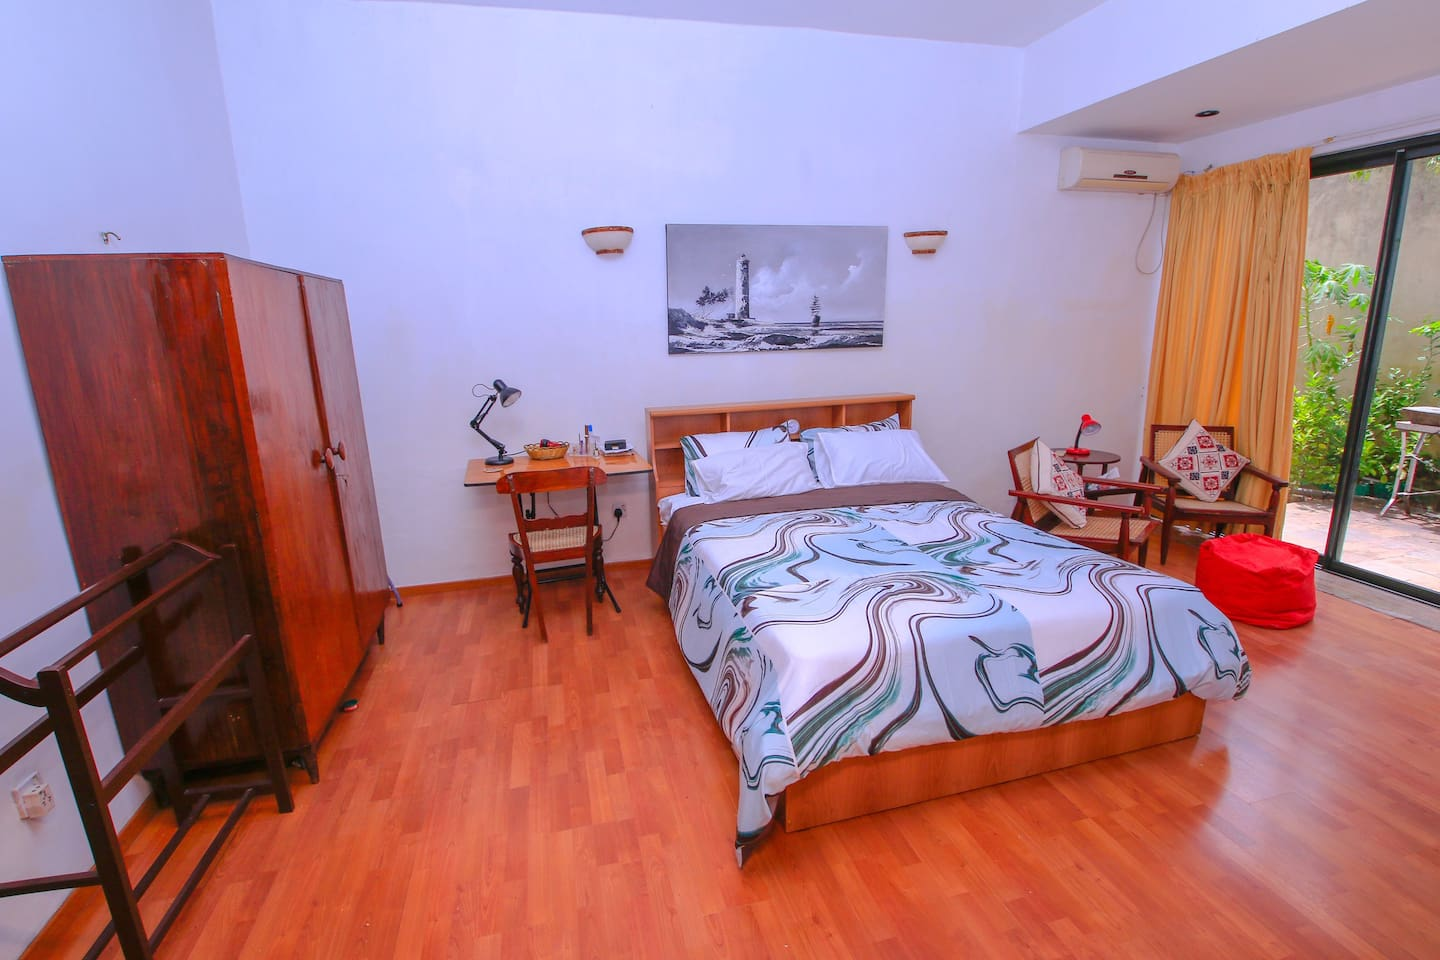 Cozy and spacious bedroom with queen-sized bed and work space, open to a homely garden area. A foldable single bed can be provided on request.